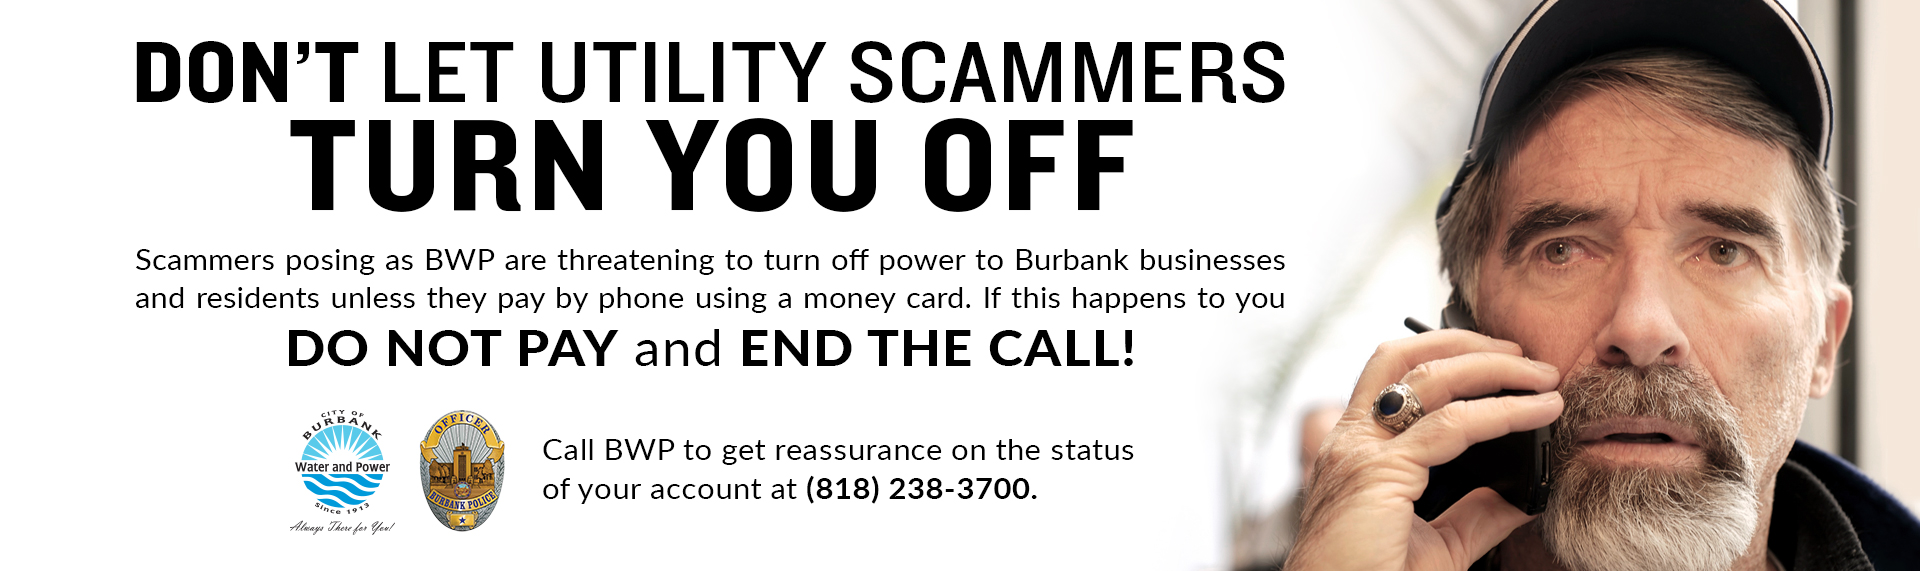 Utility Scams Are On The Rise